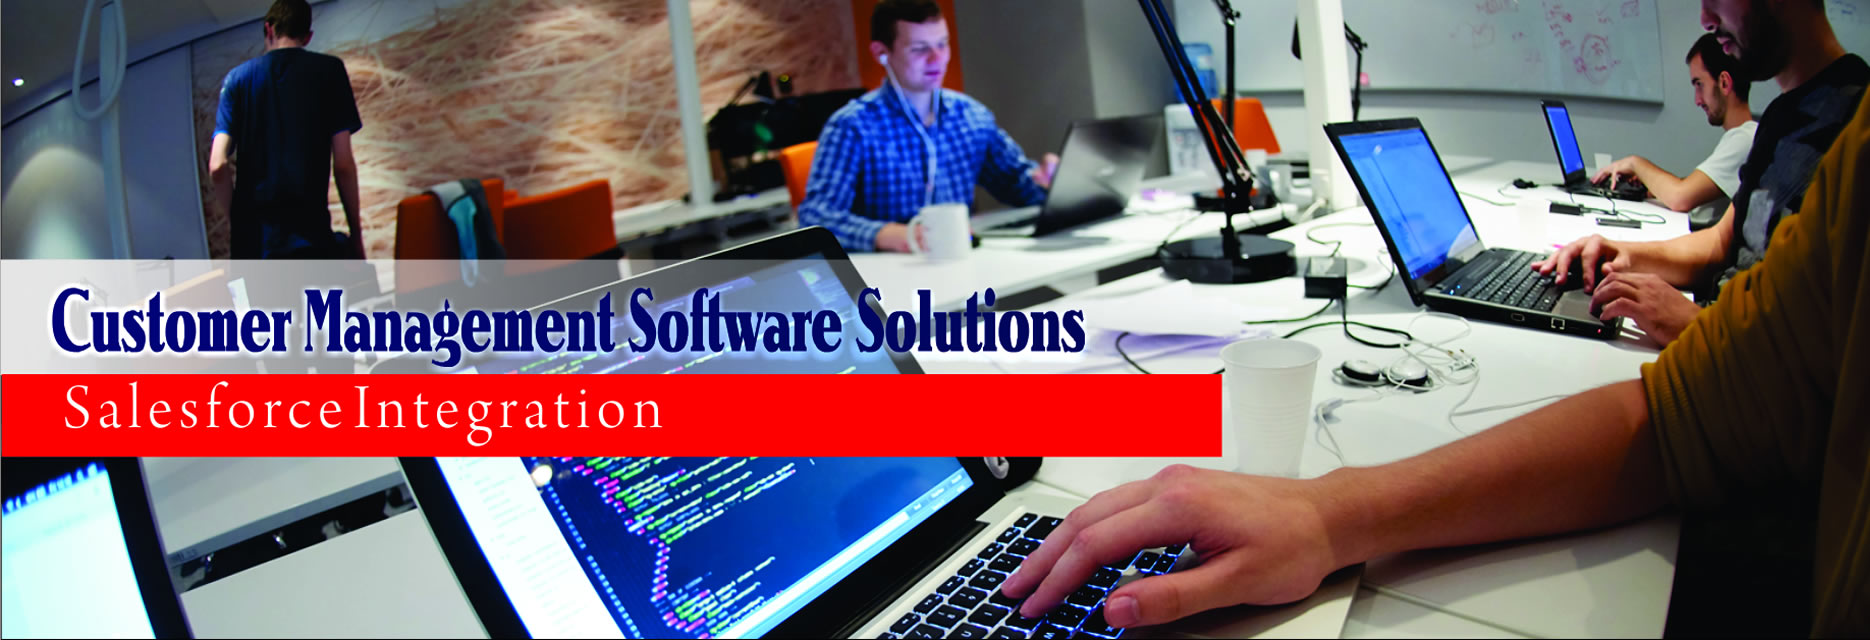 Customer Management Software Solutions